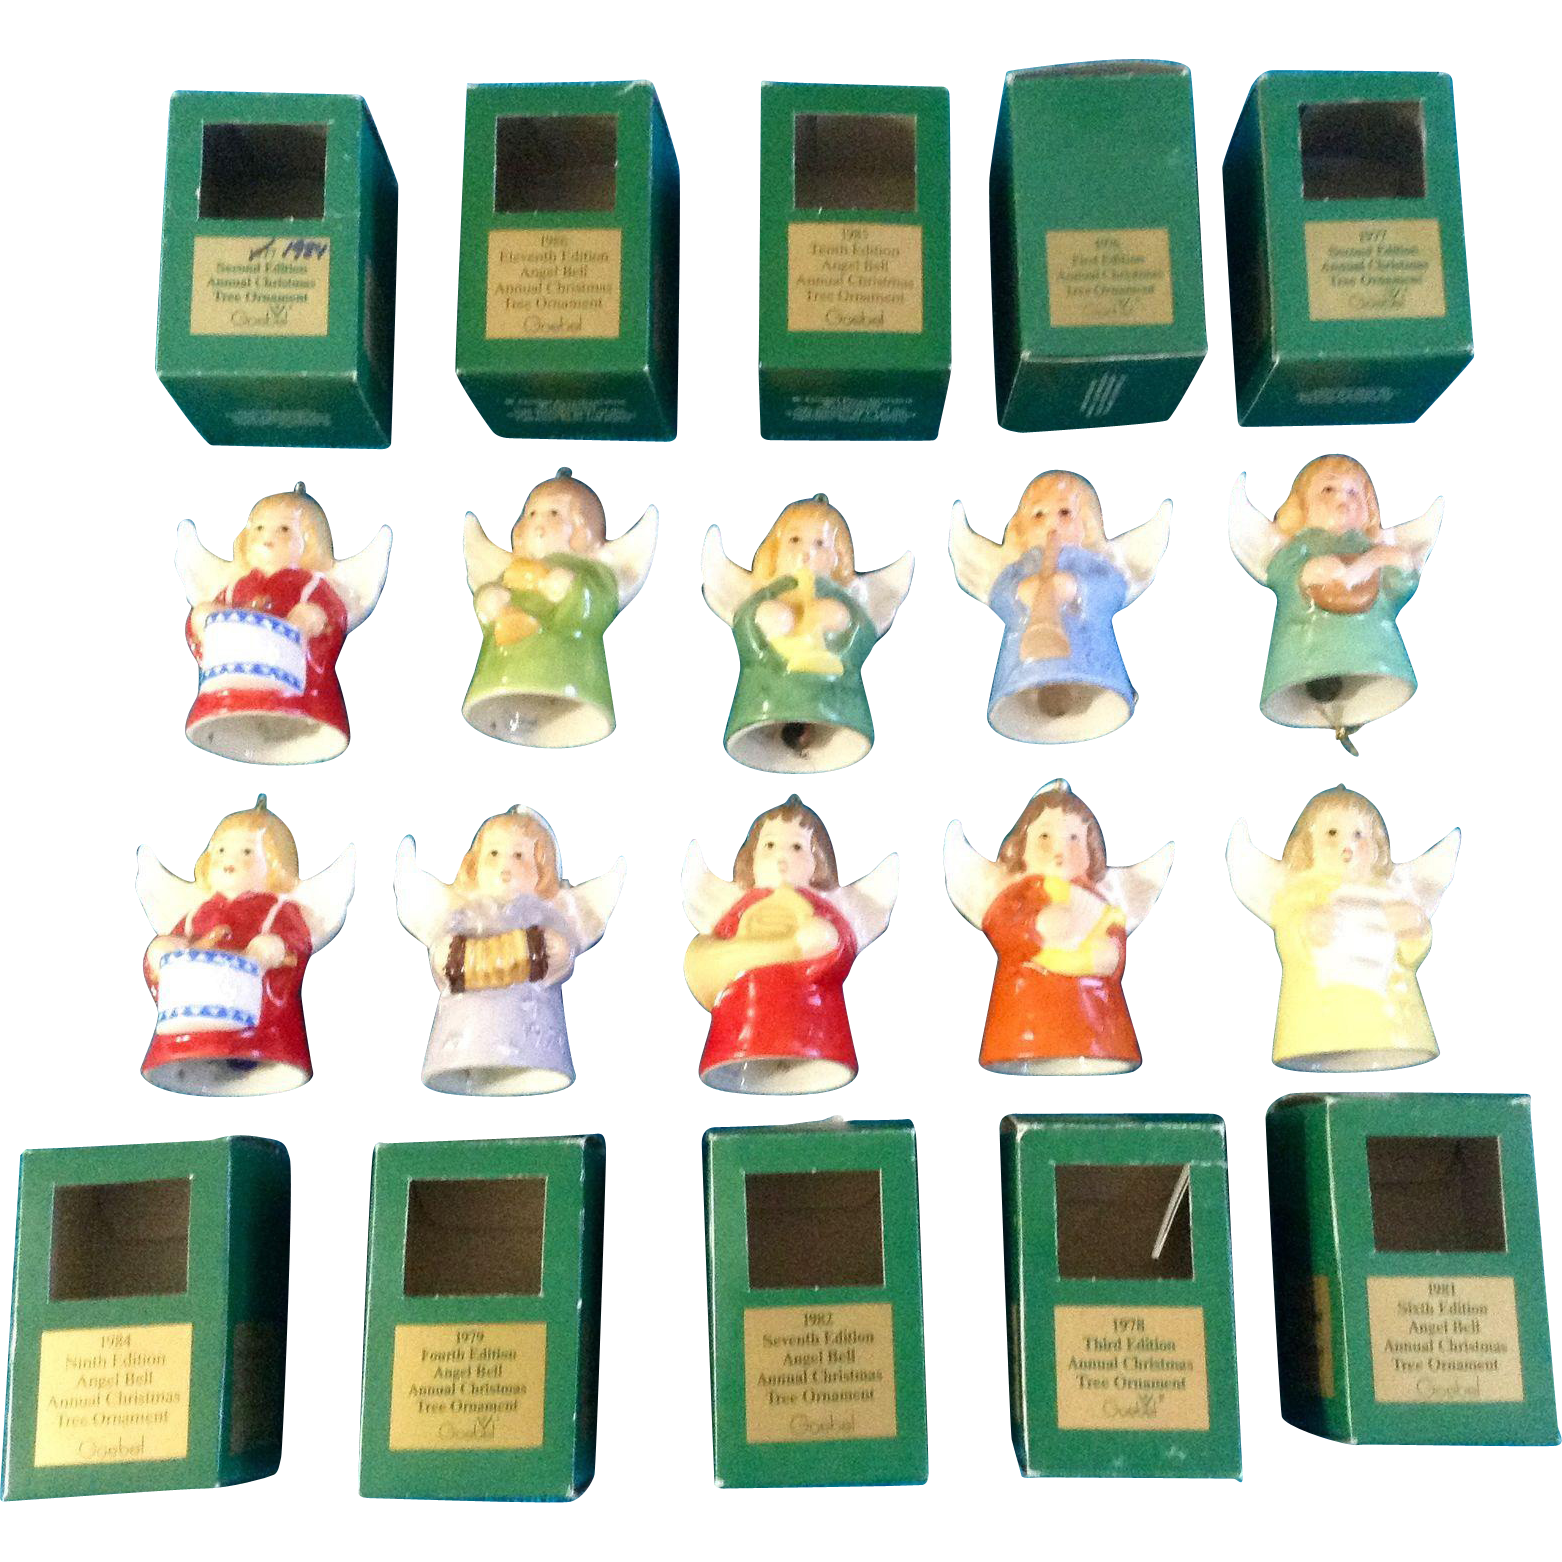 Goebel christmas ornaments - Goebel Angel Bell Christmas Tree Ornaments Set Of 10 West Germany Annual 1976 1977 1978 1979 1981 1982 1984 1985 1986